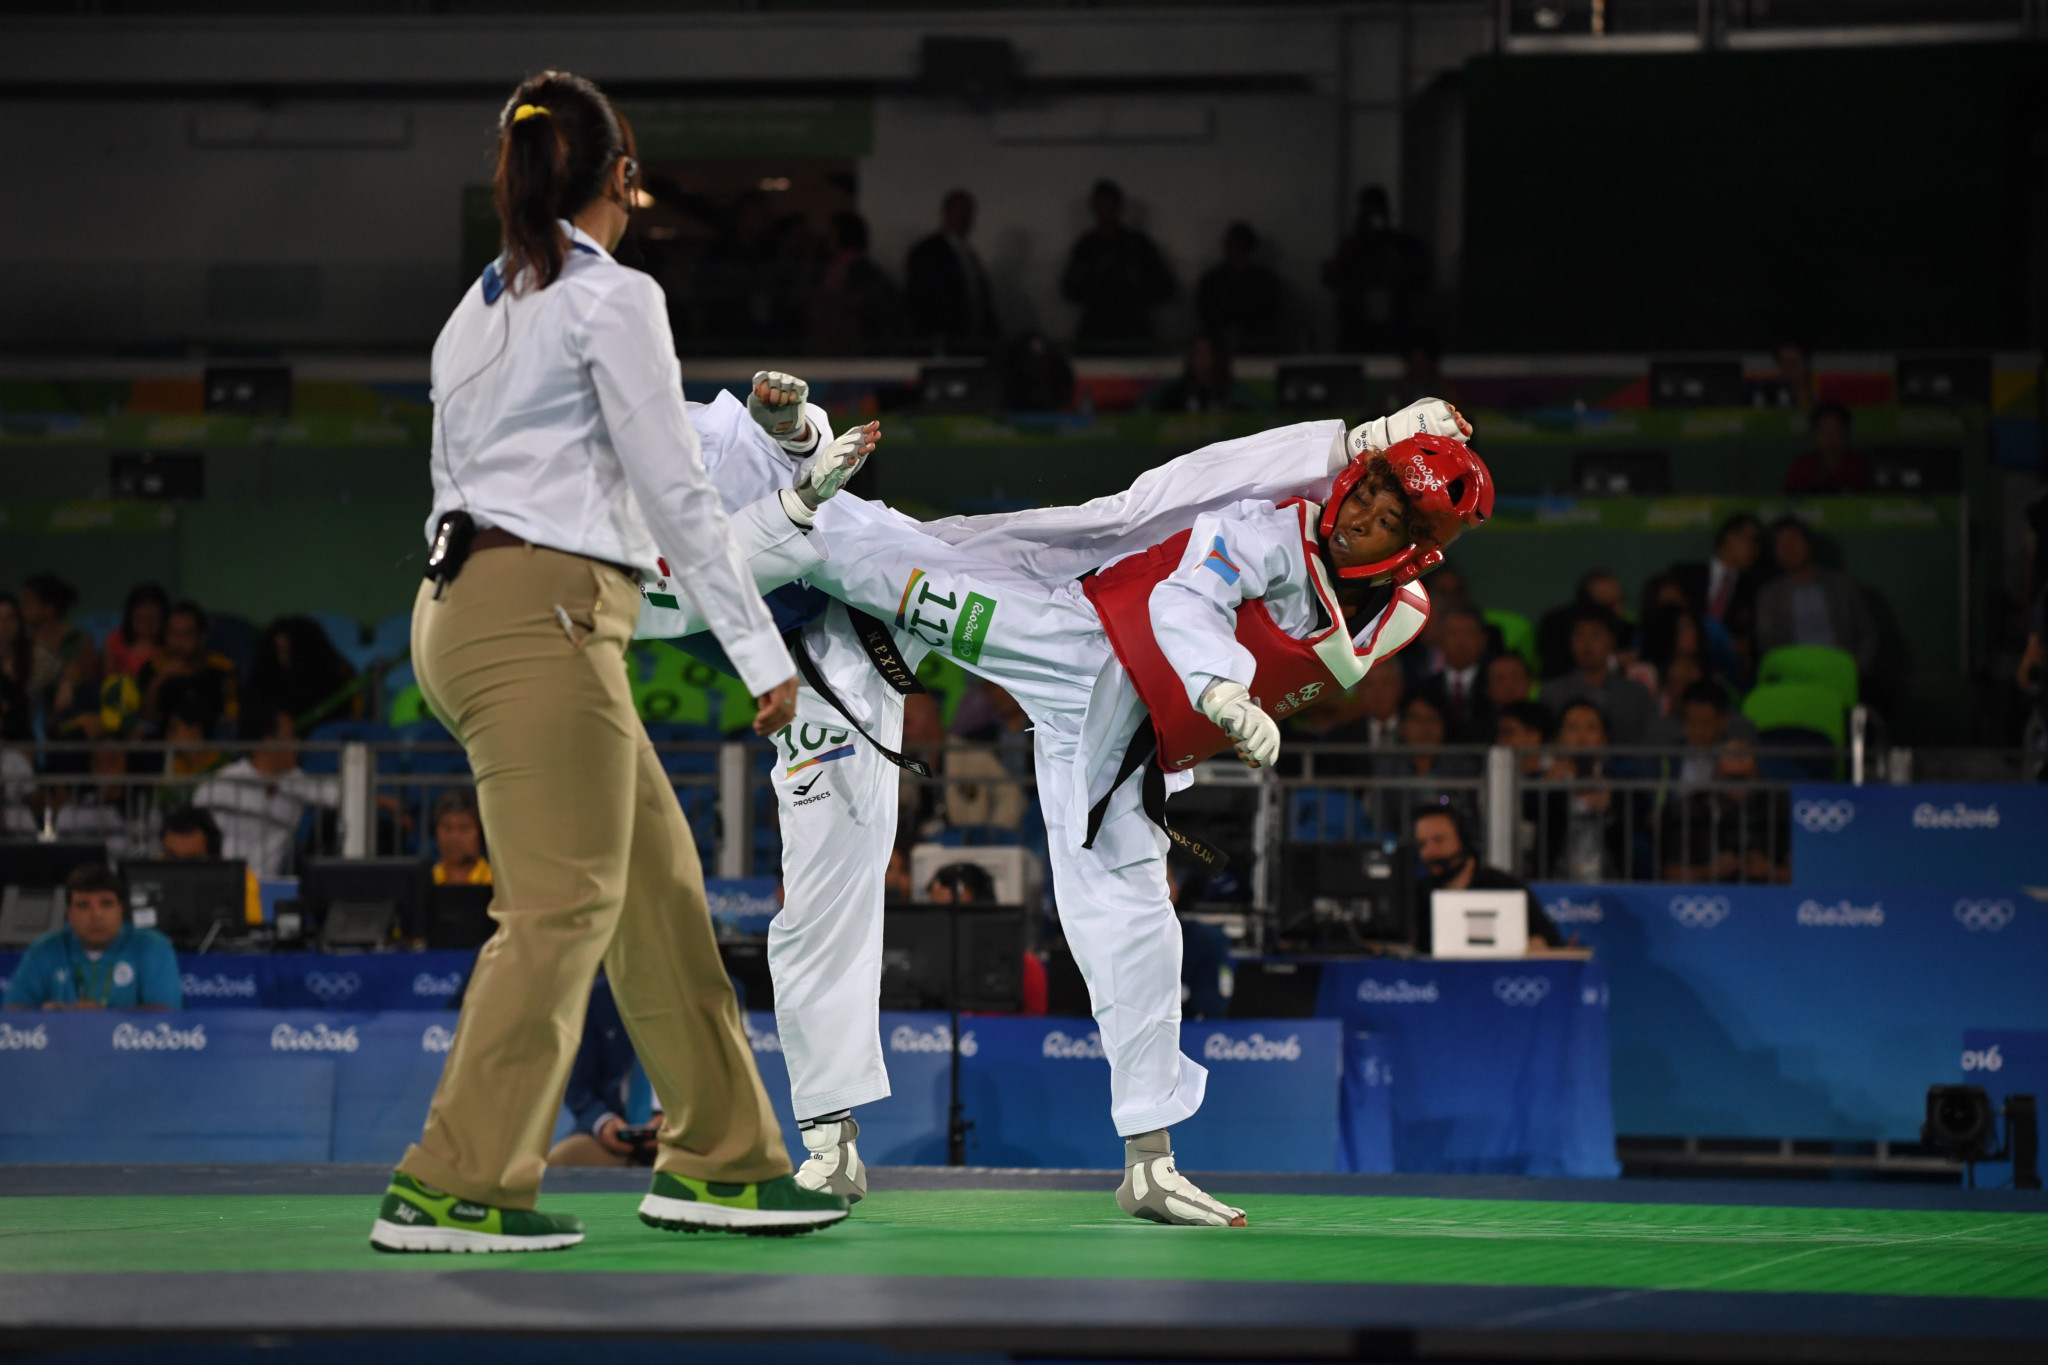 The camps will focus on kyorugi and poomsae referee development ©Getty Images